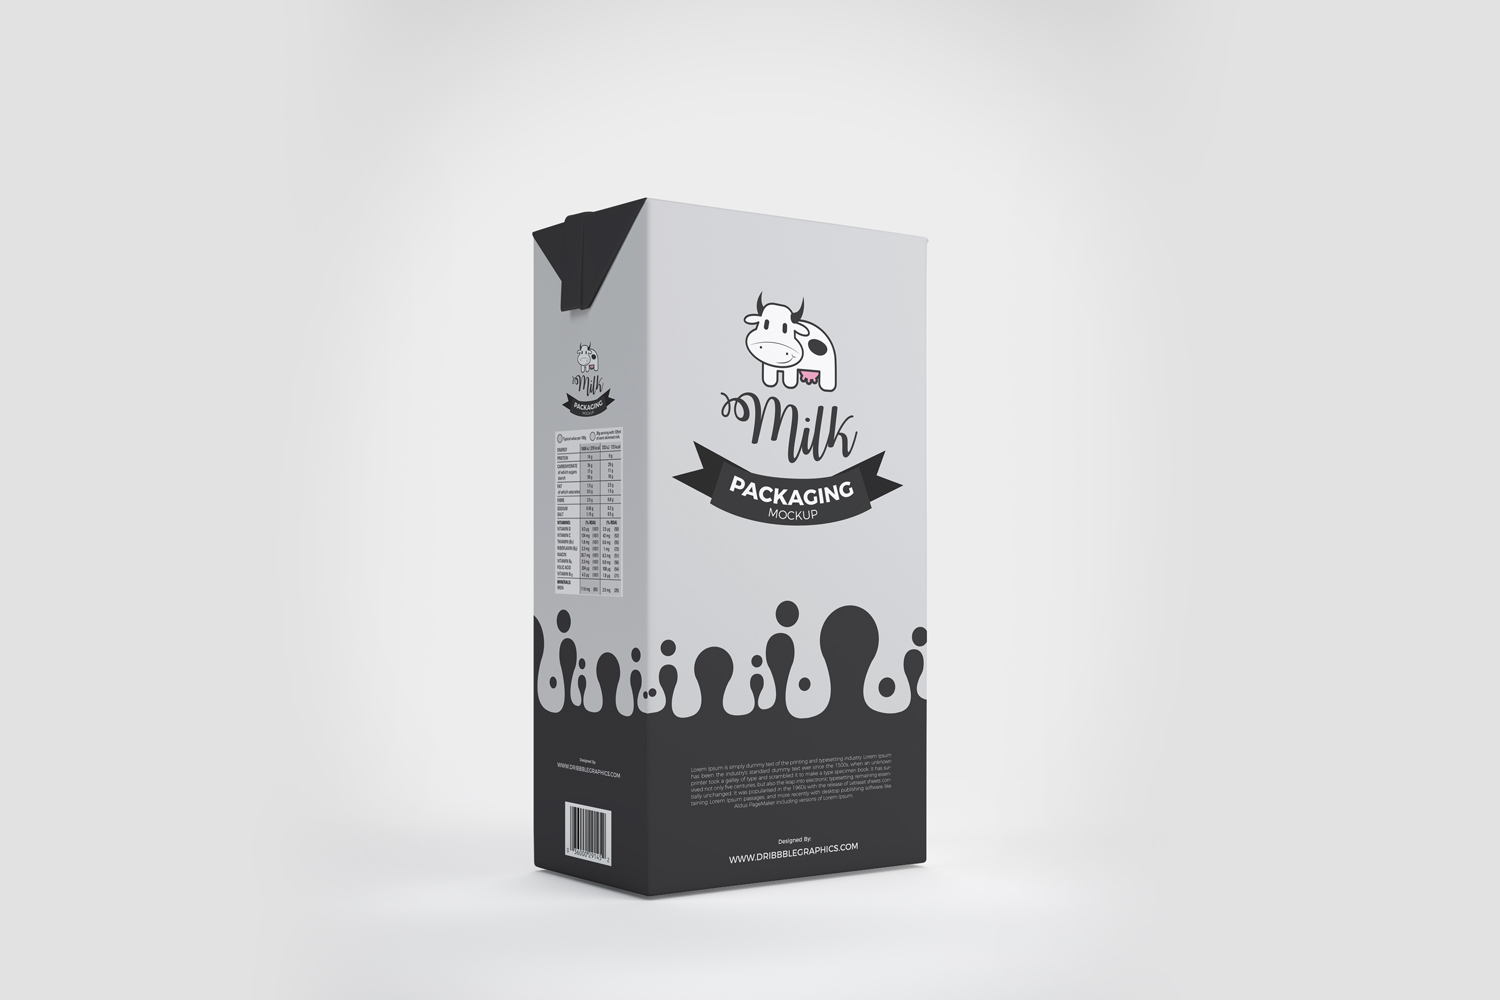 Free-Milk-Box-Packaging-Mockup-Preview-2